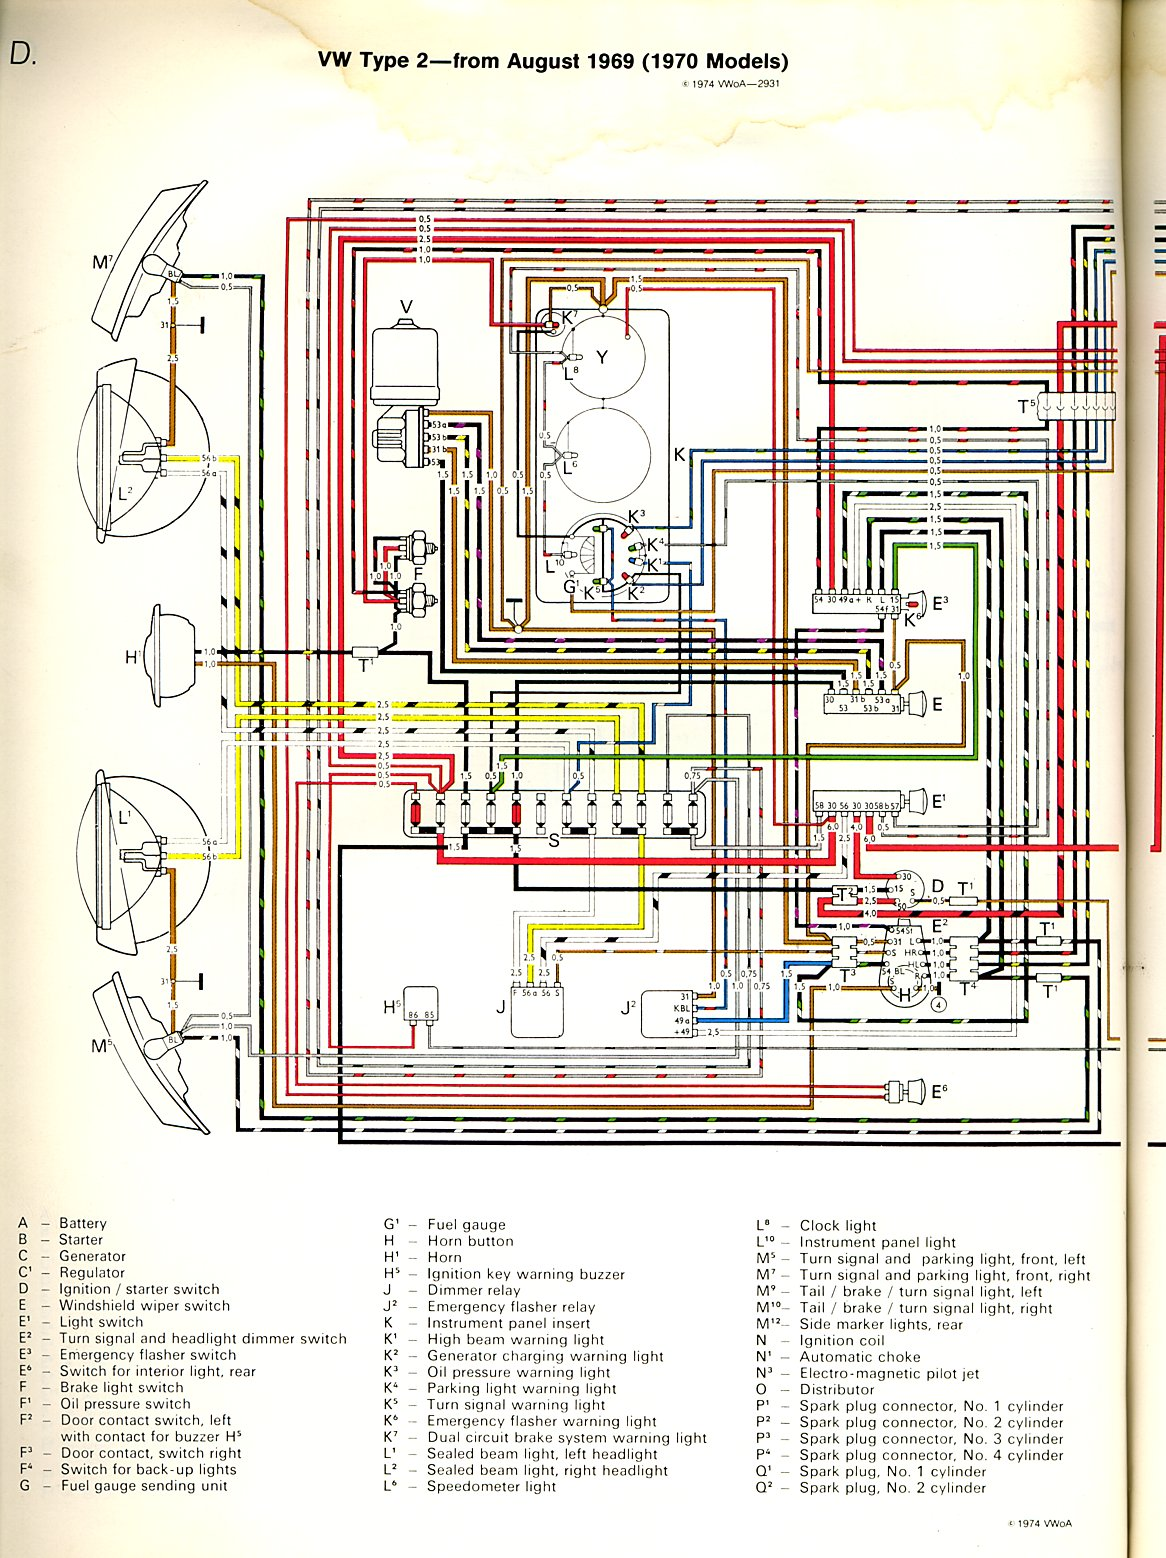 baybus_70a vw bus wiring diagram 1965 vw bus wiring diagram \u2022 wiring diagrams  at bayanpartner.co